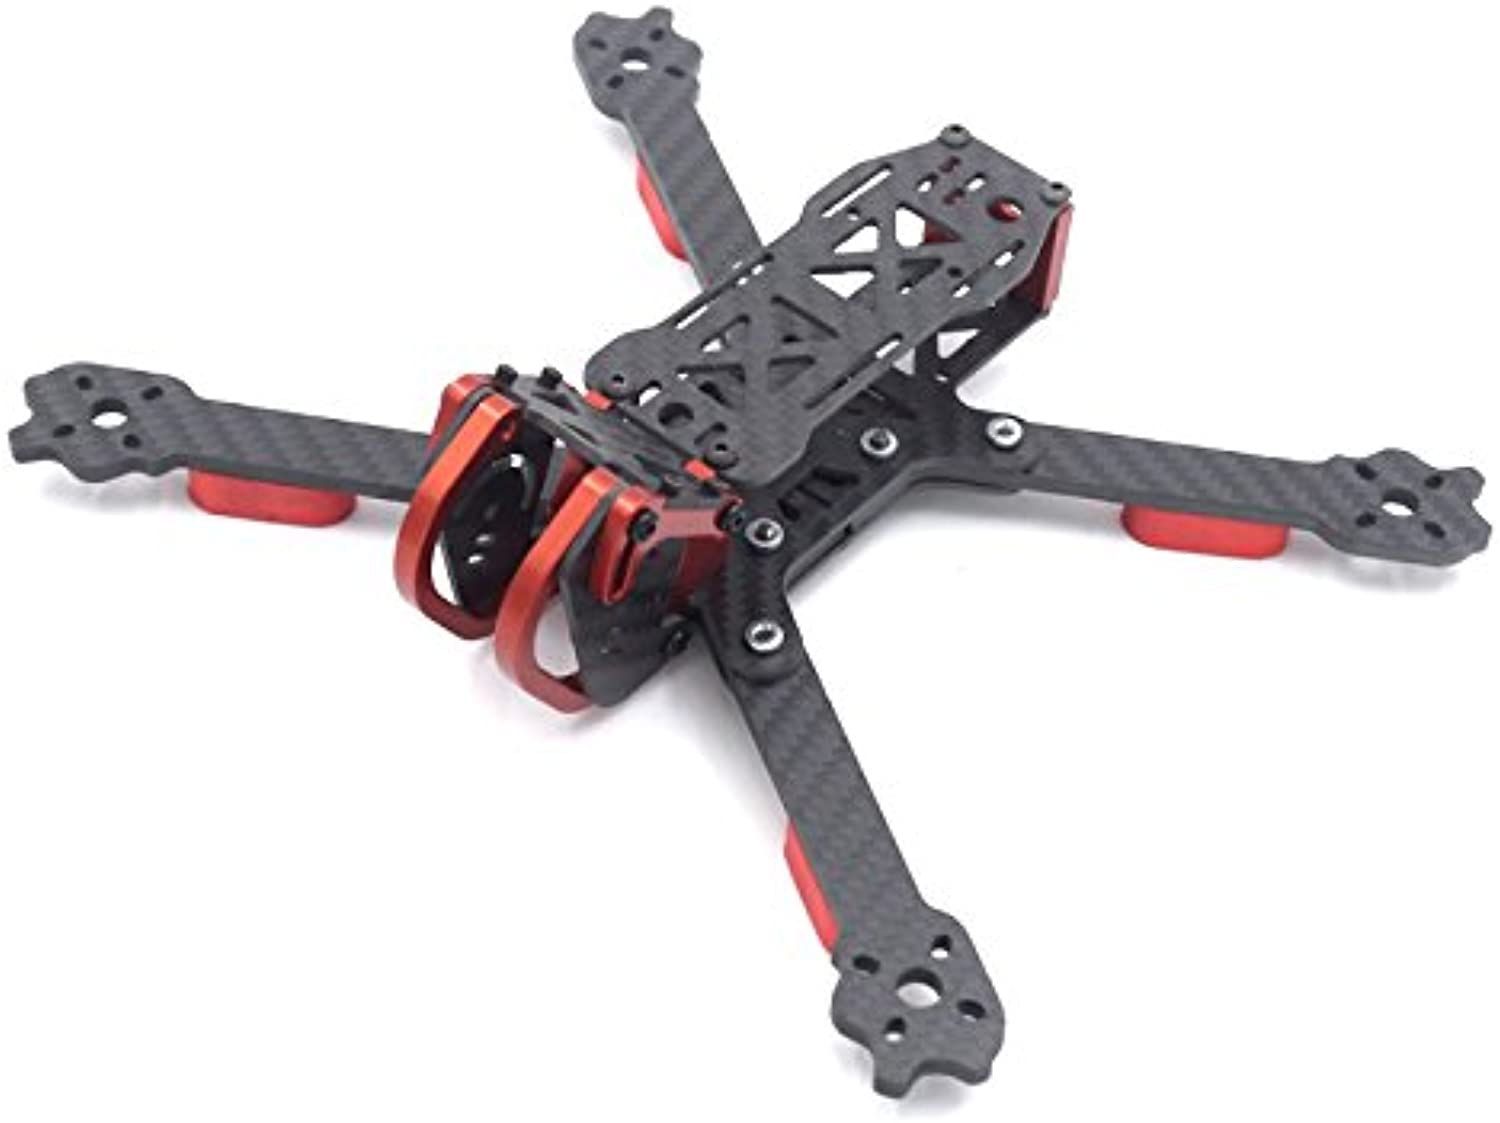 KINGDUO Leaco Fnc230 230Mm Radstand 4Mm Arm Lang x Struktur Carbonfaser FPV Racing Frame Kit